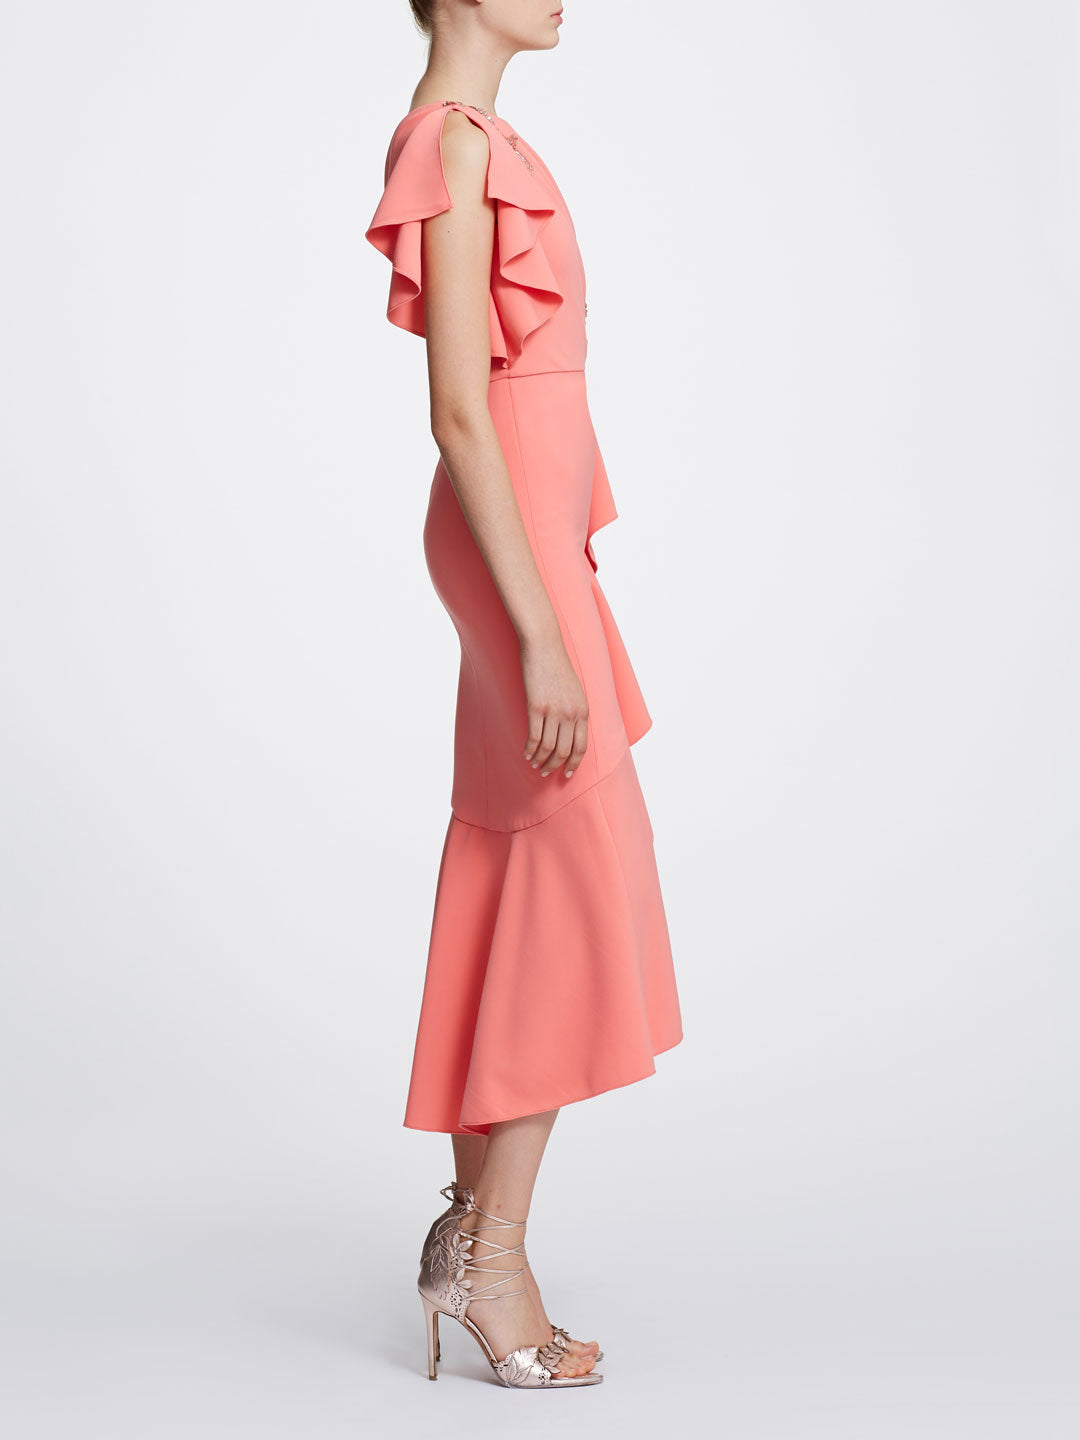 One Shoulder Ruffle Sleeve Tea Length